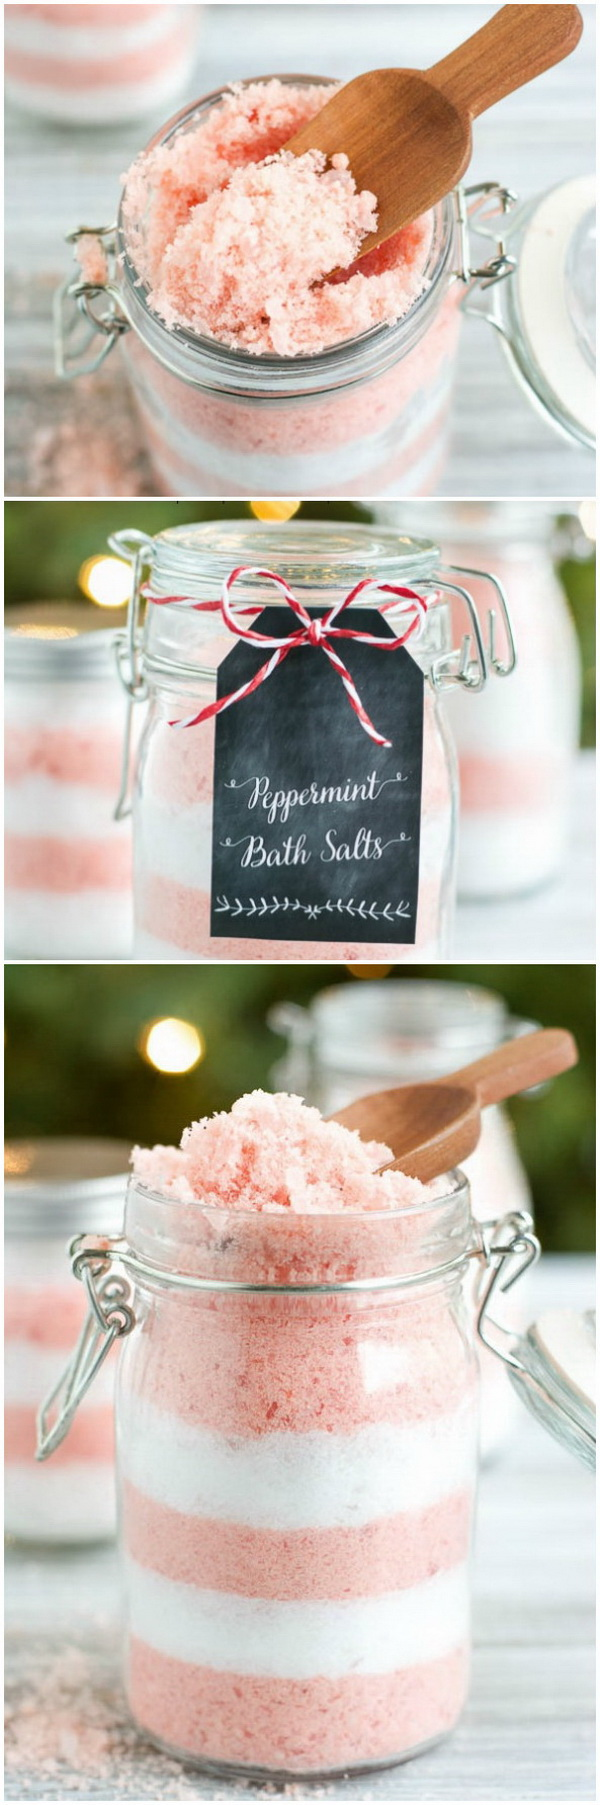 diy peppermint bath salts homemade peppermint bath salts make a wonderful christmas gift for friends